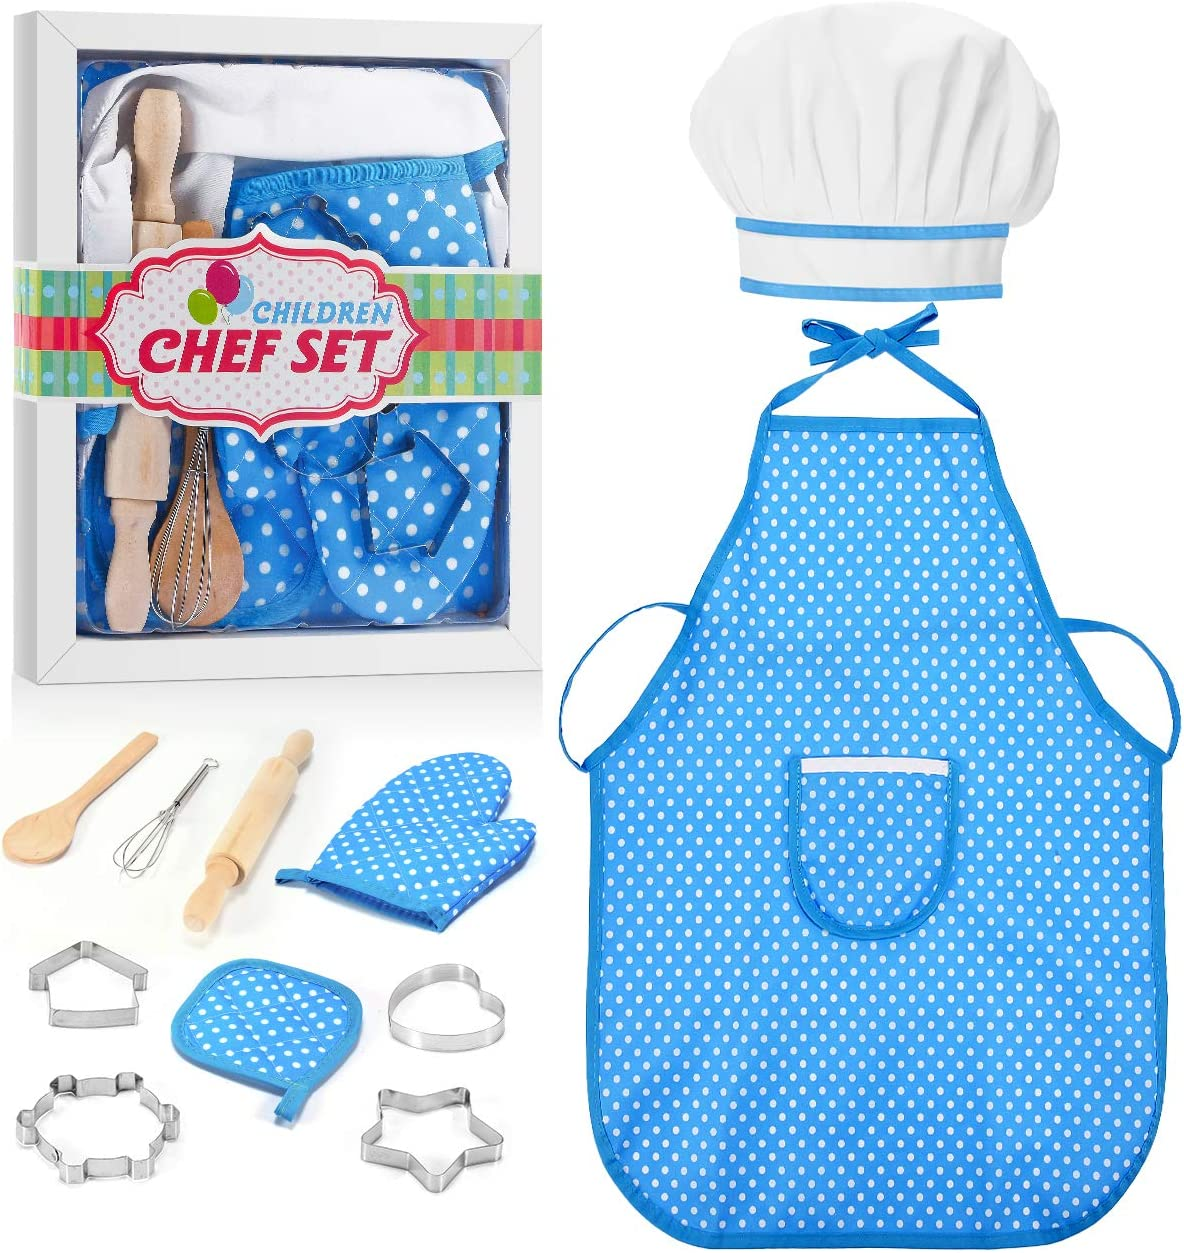 ATOPDREAM Kids Apron 11 Pcs Kids Cooking Supplies Includes Baking Set Chef Hat and Apron for Girls, Oven Mittand Baking Tools for Kids Cooking Girls Age 9-12, Blue